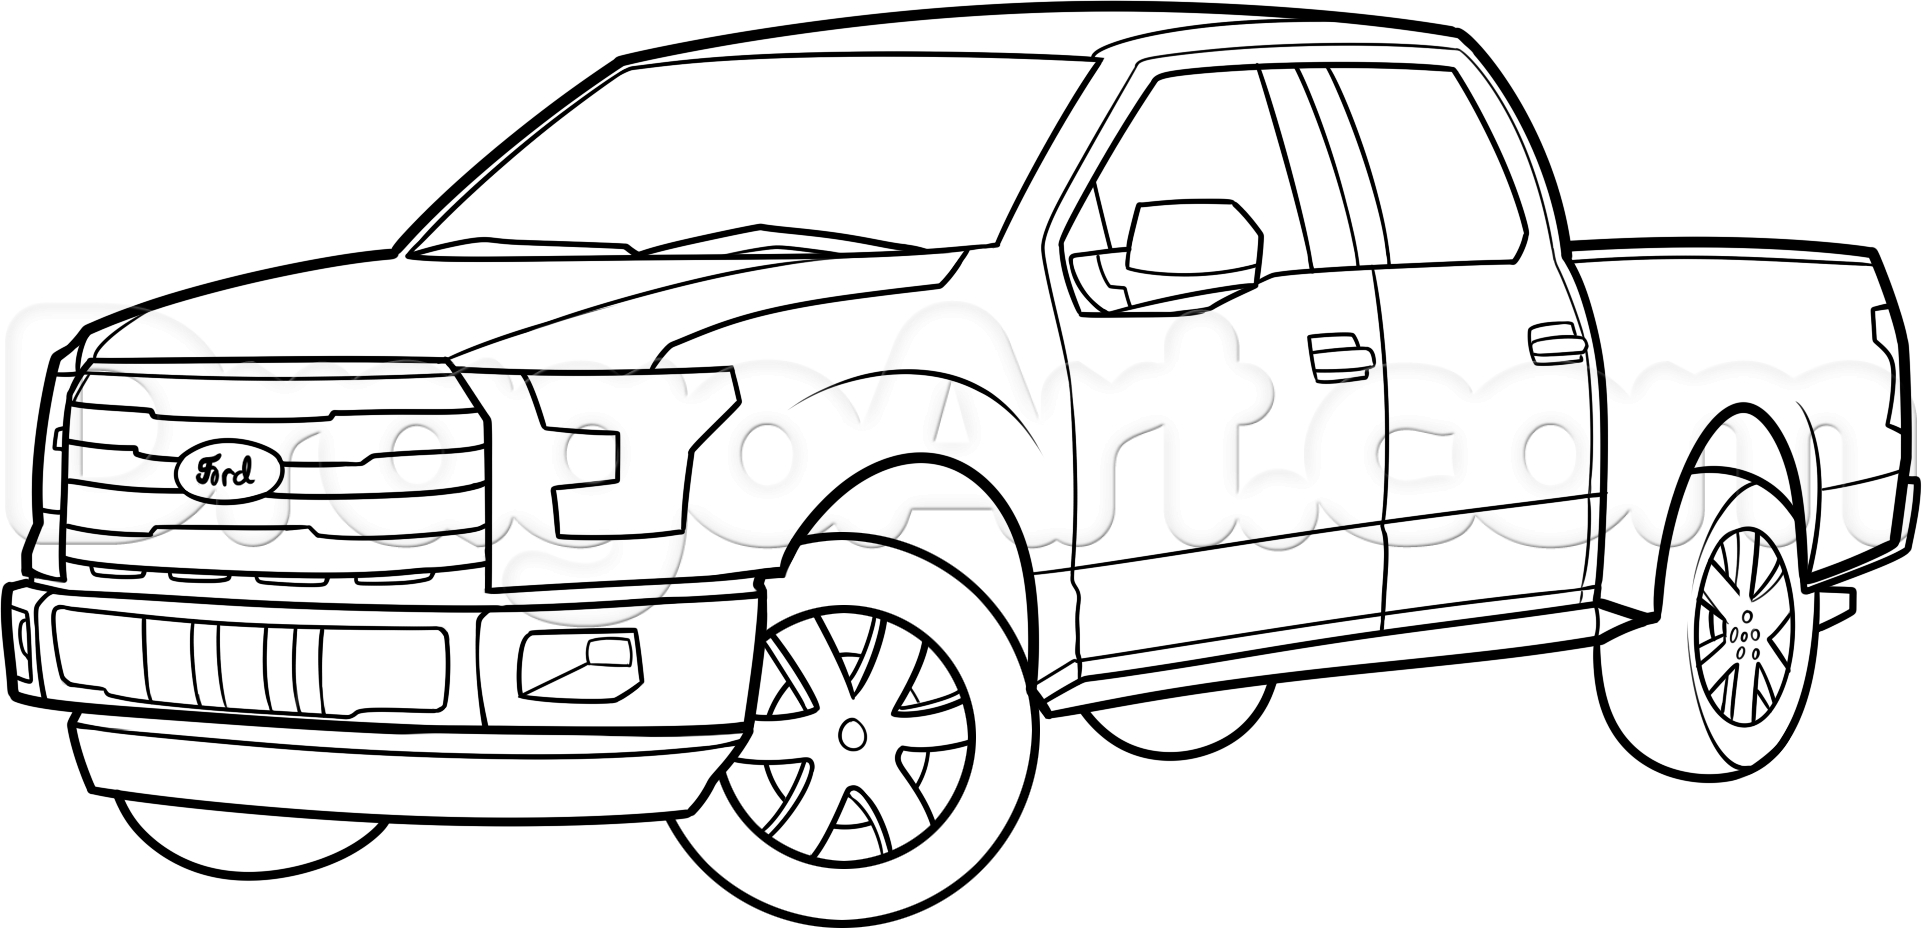 Ford Truck Coloring Pages Printable – Free Coloring Sheets